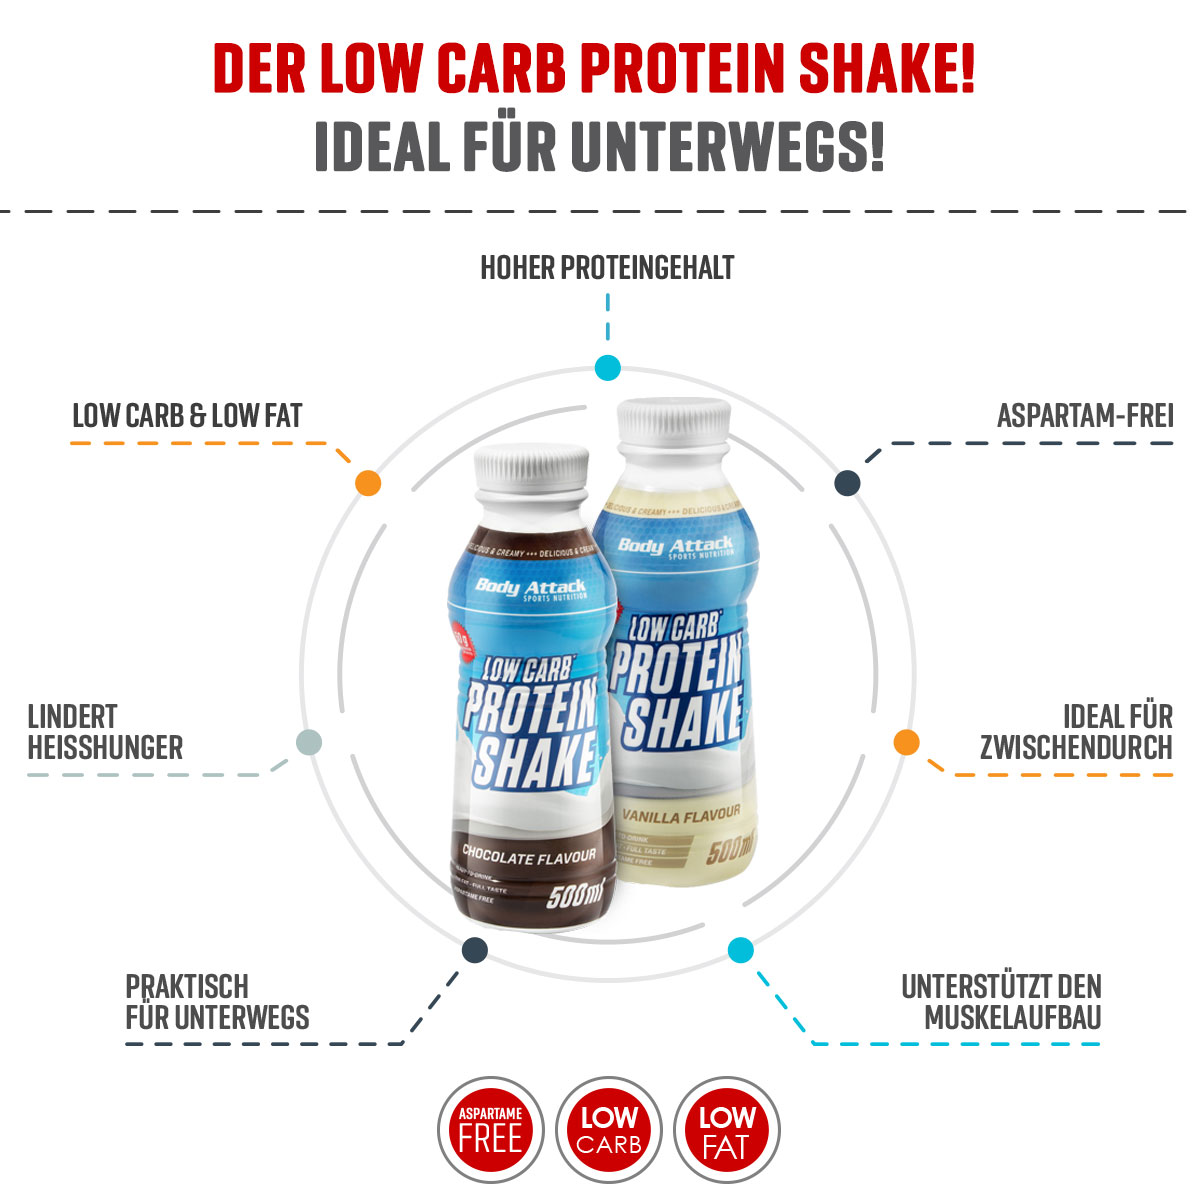 Low Carb Protein Shake Info